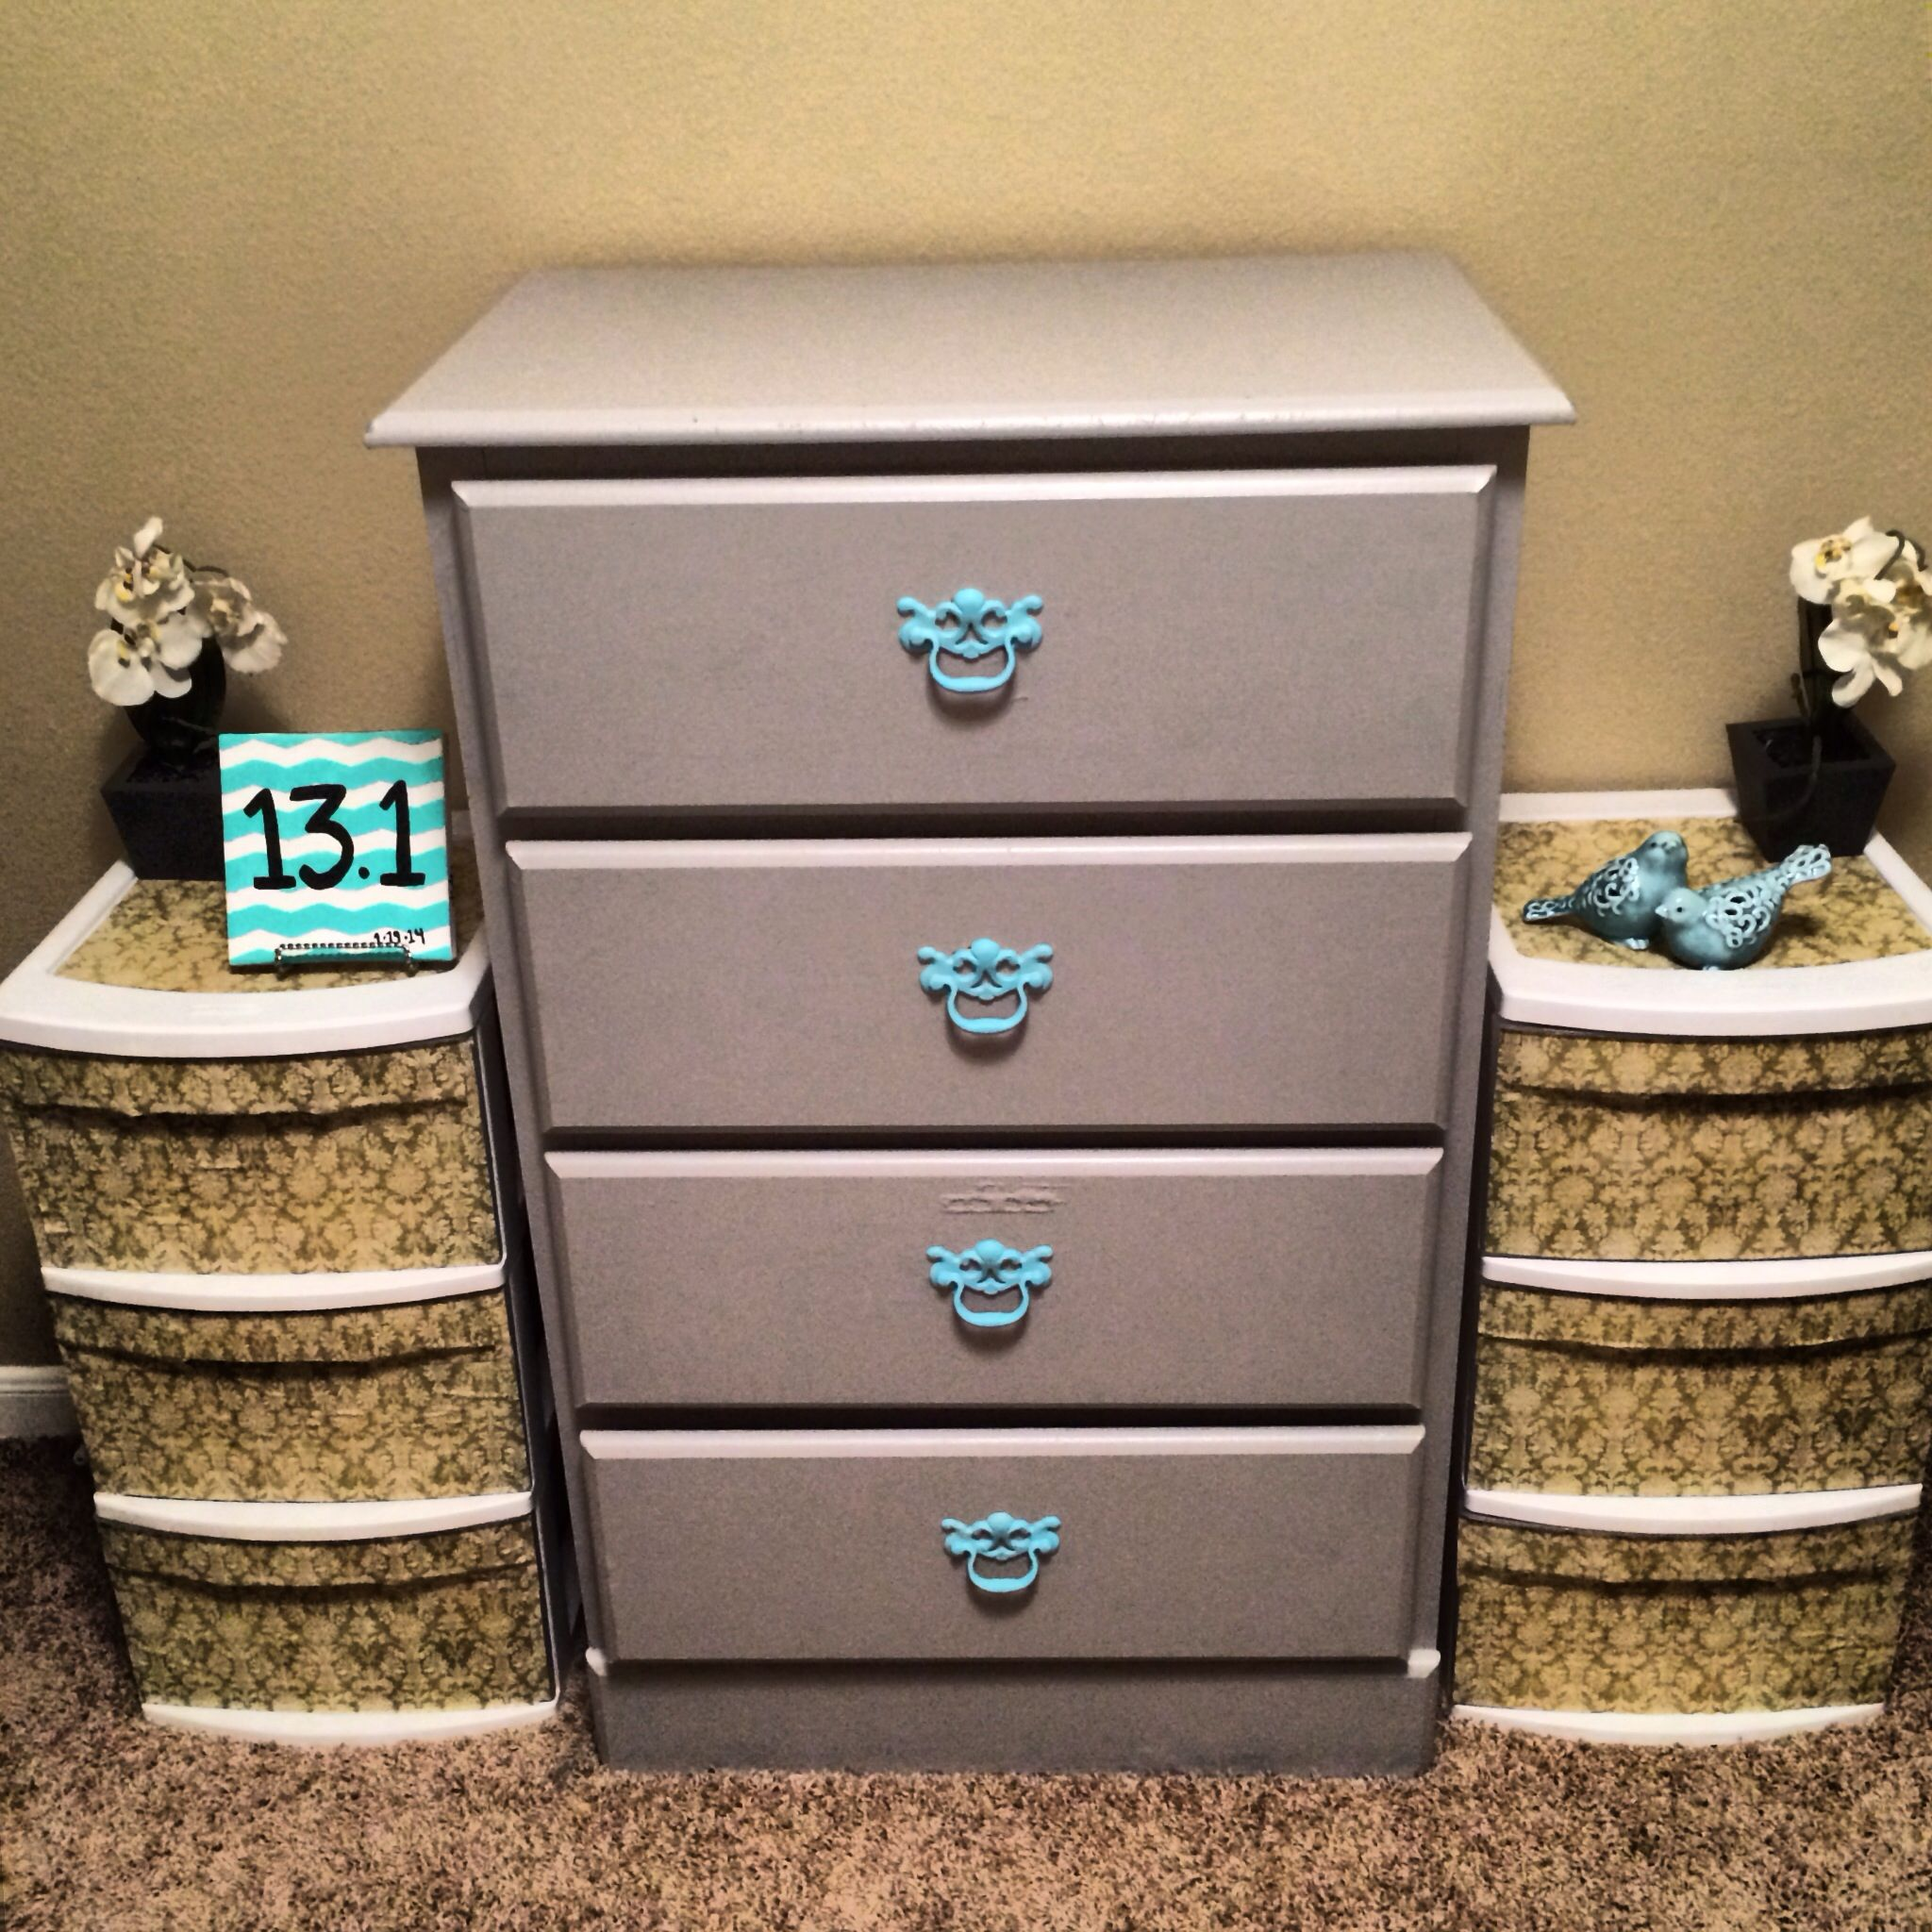 Modpodge Plastic Containers And Painted Old Dresser Newlook